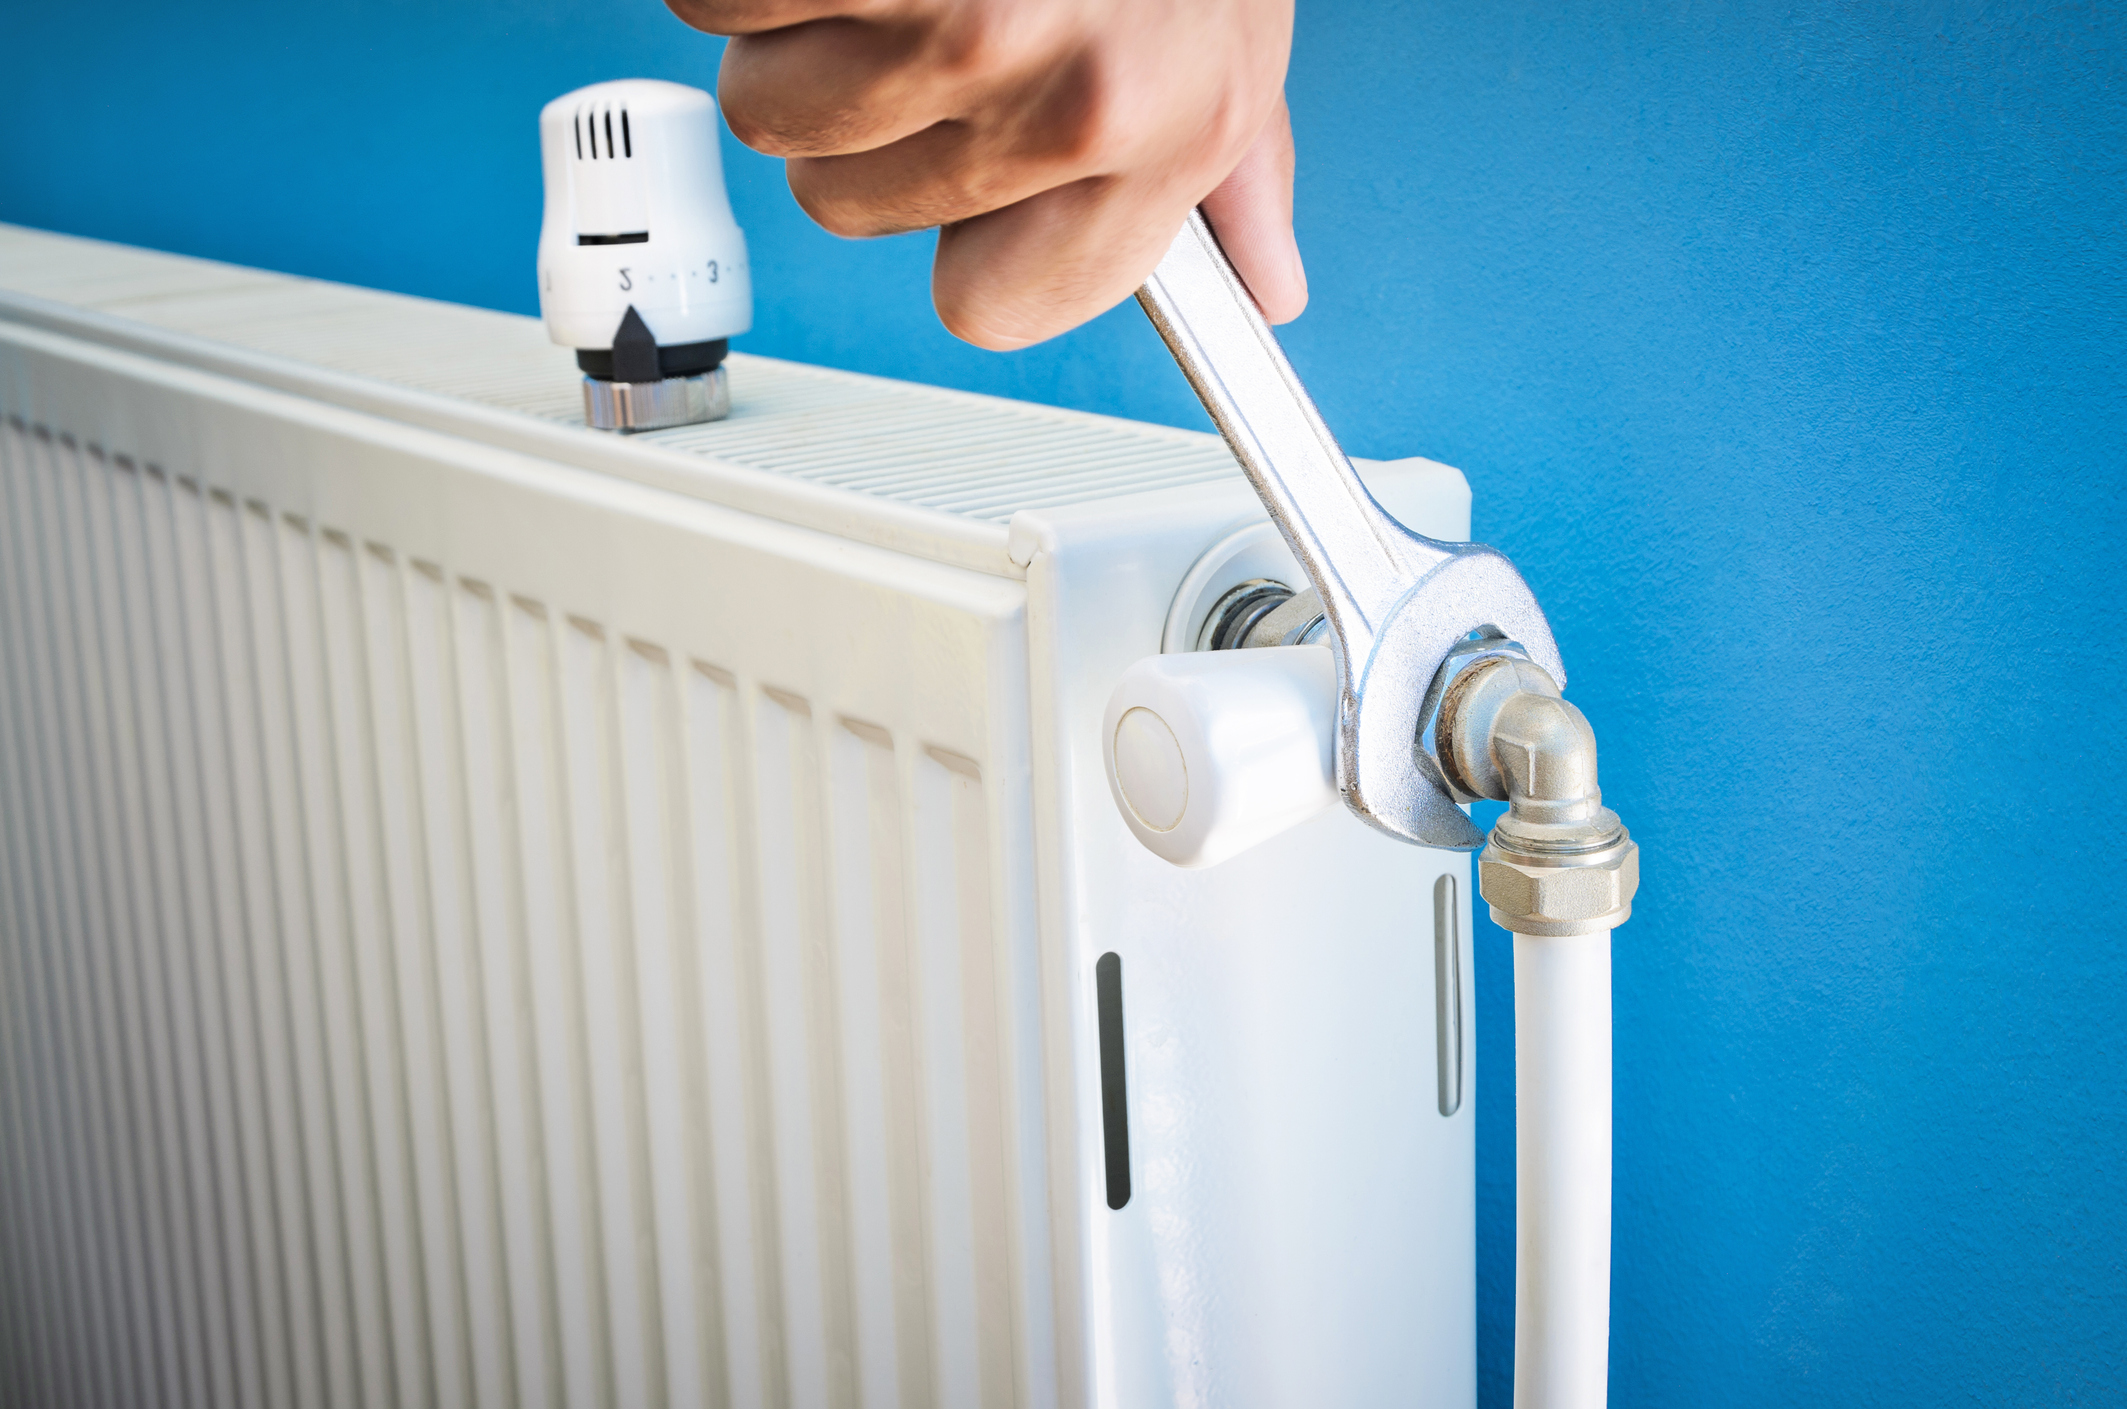 Looking after your boiler will ensure you stay warm and save on energy bills!